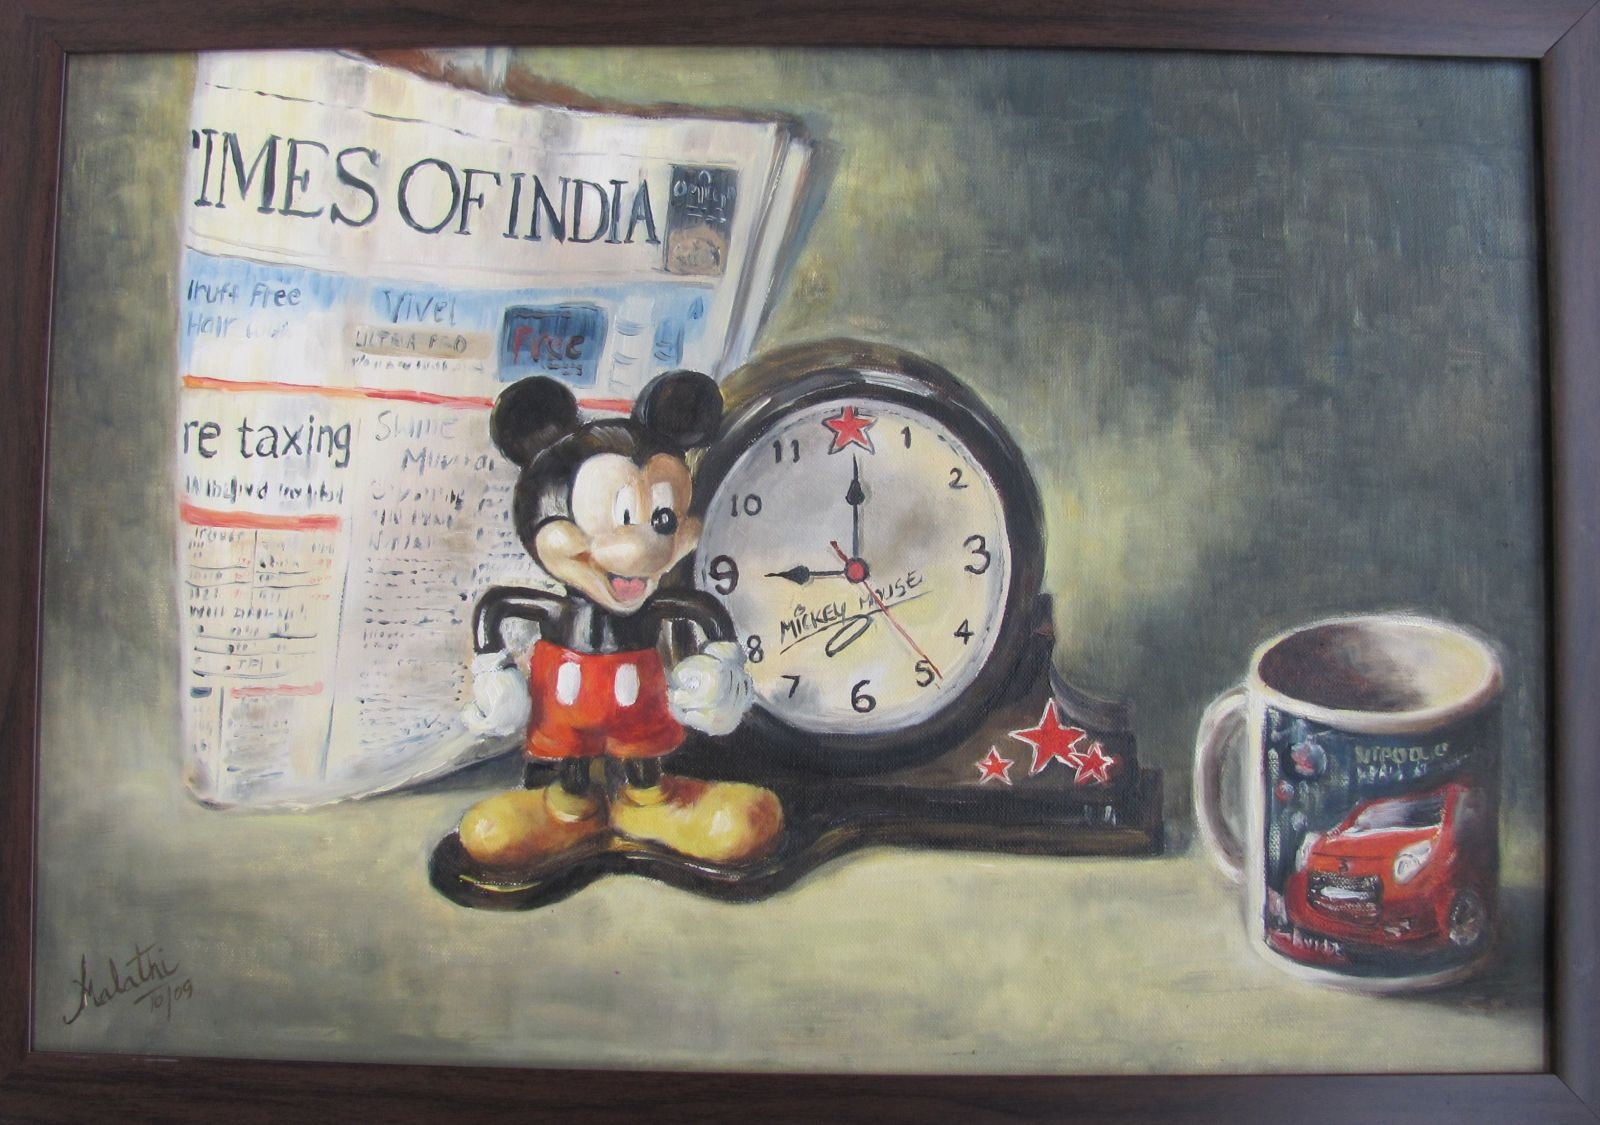 Mickey Mouse and the Times of India